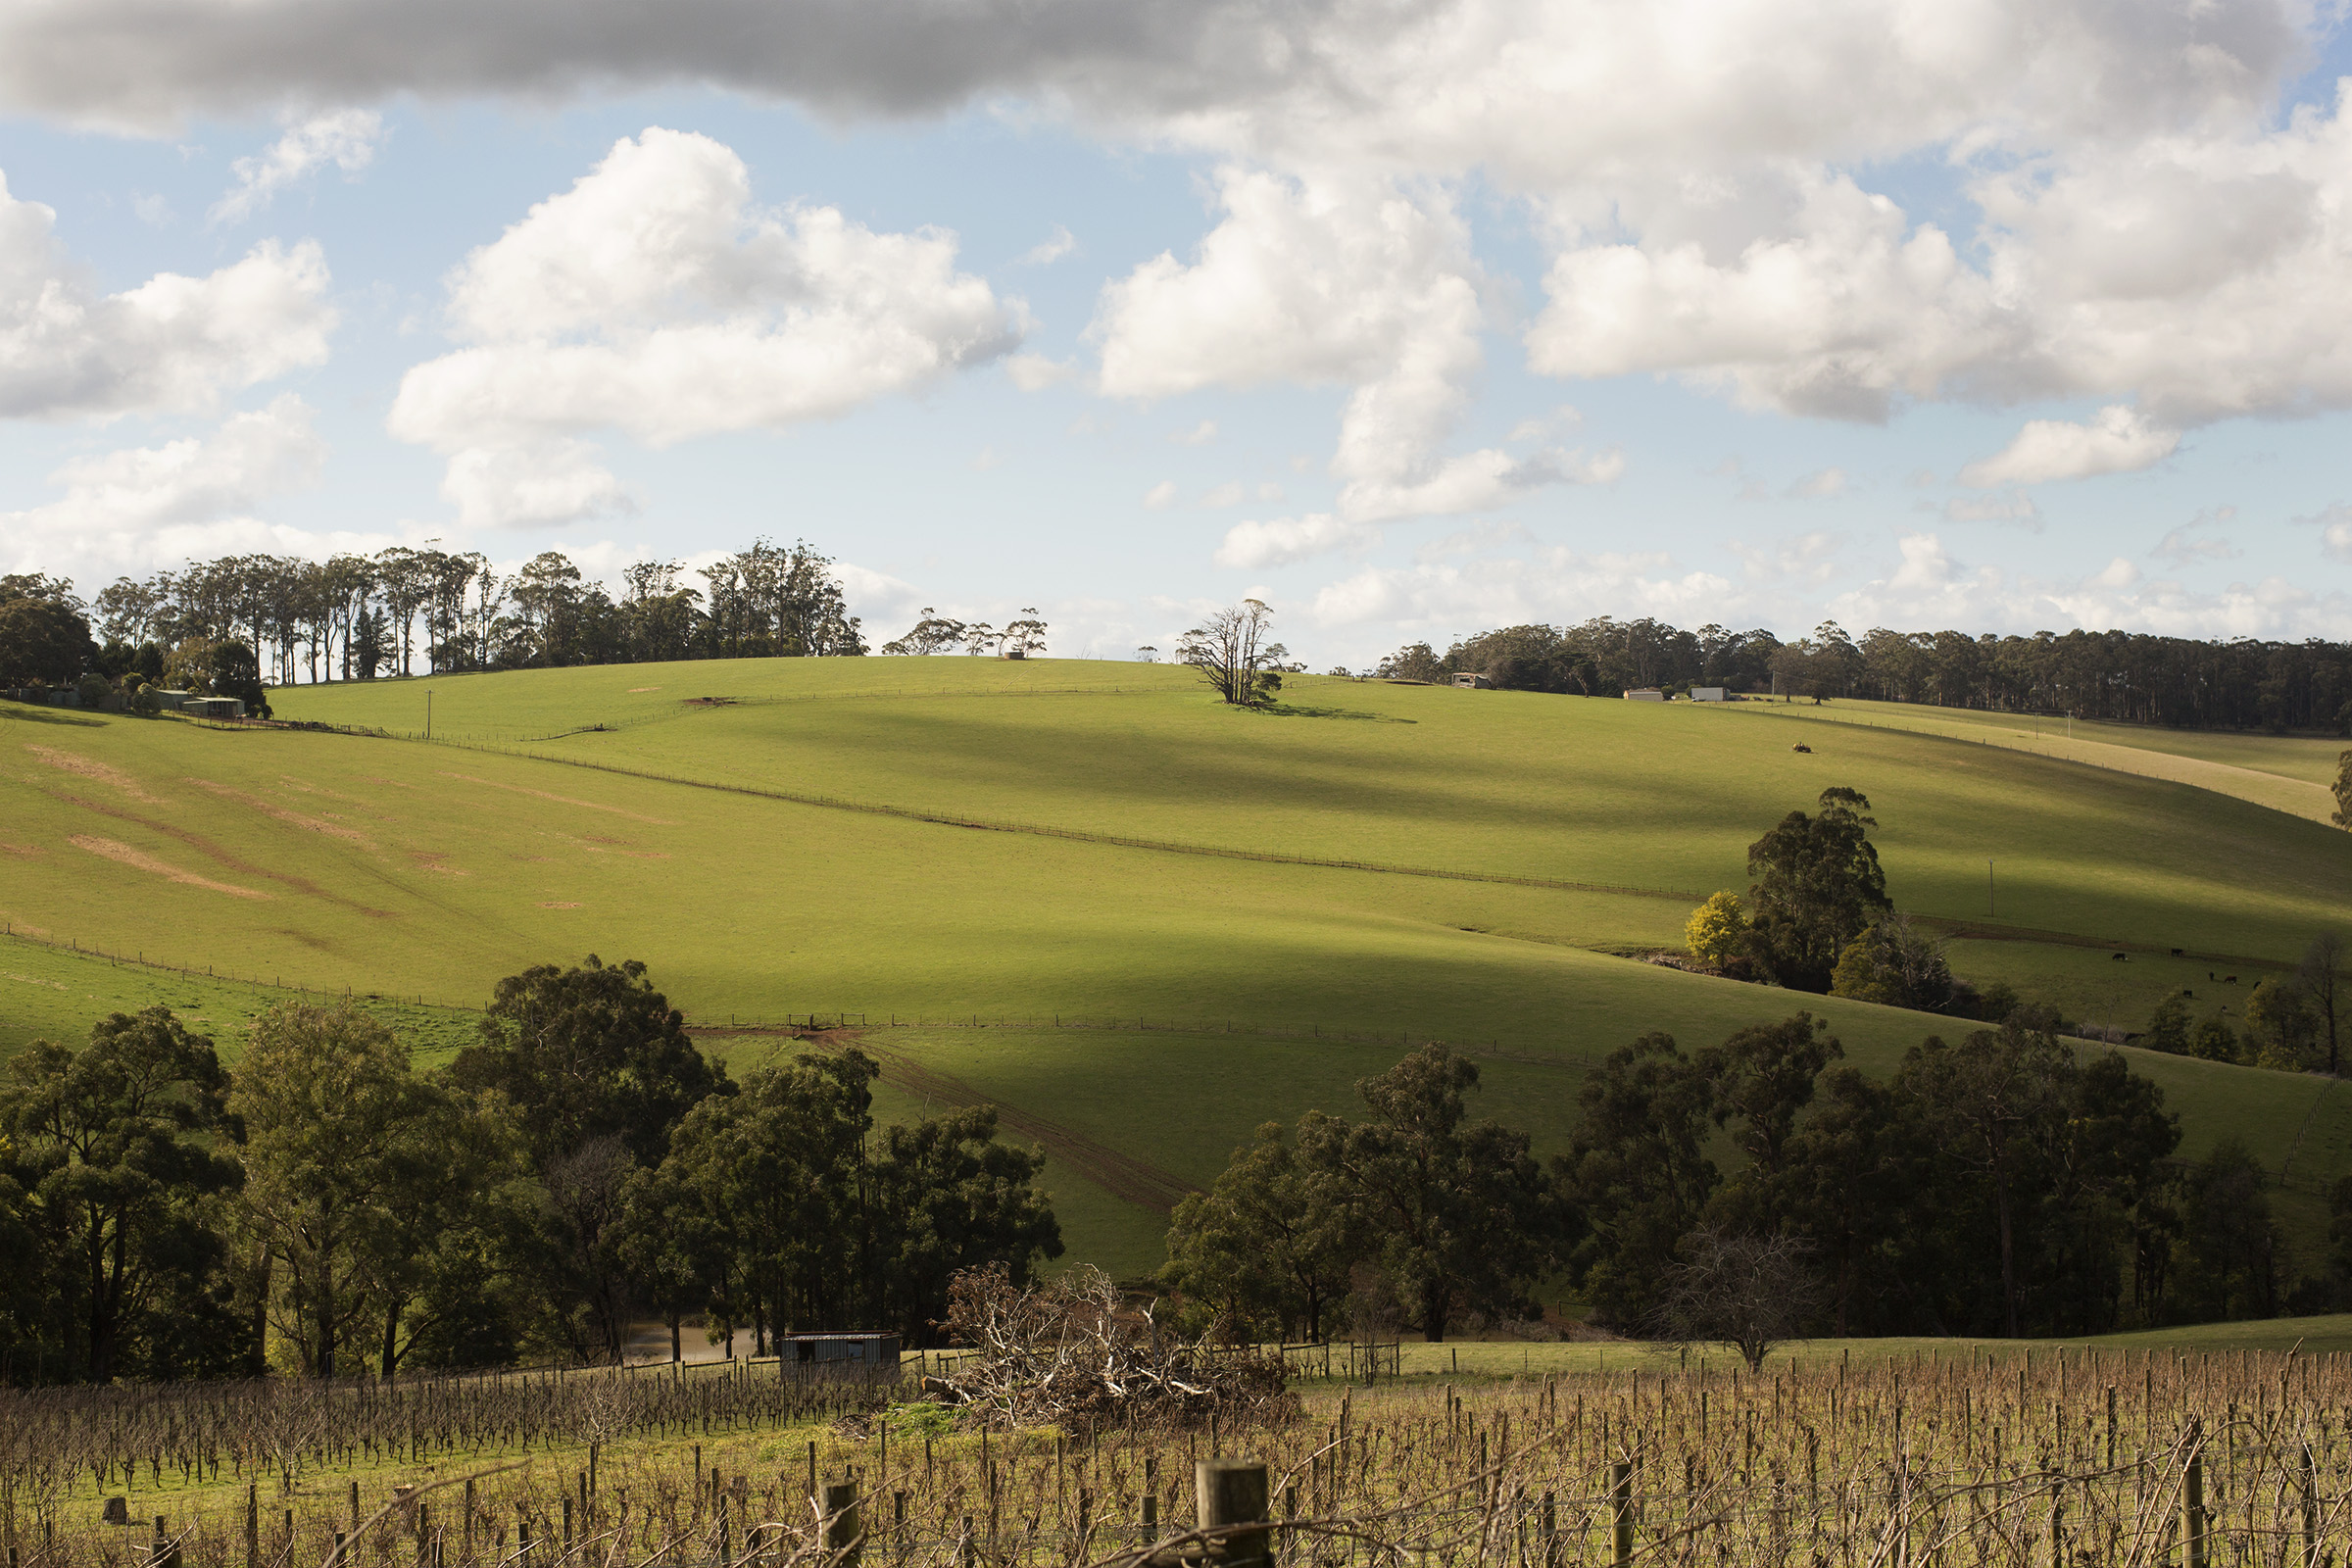 Seasoned Spring Dinner with Jayden Ong at The Stables at Stones of the Yarra Valley